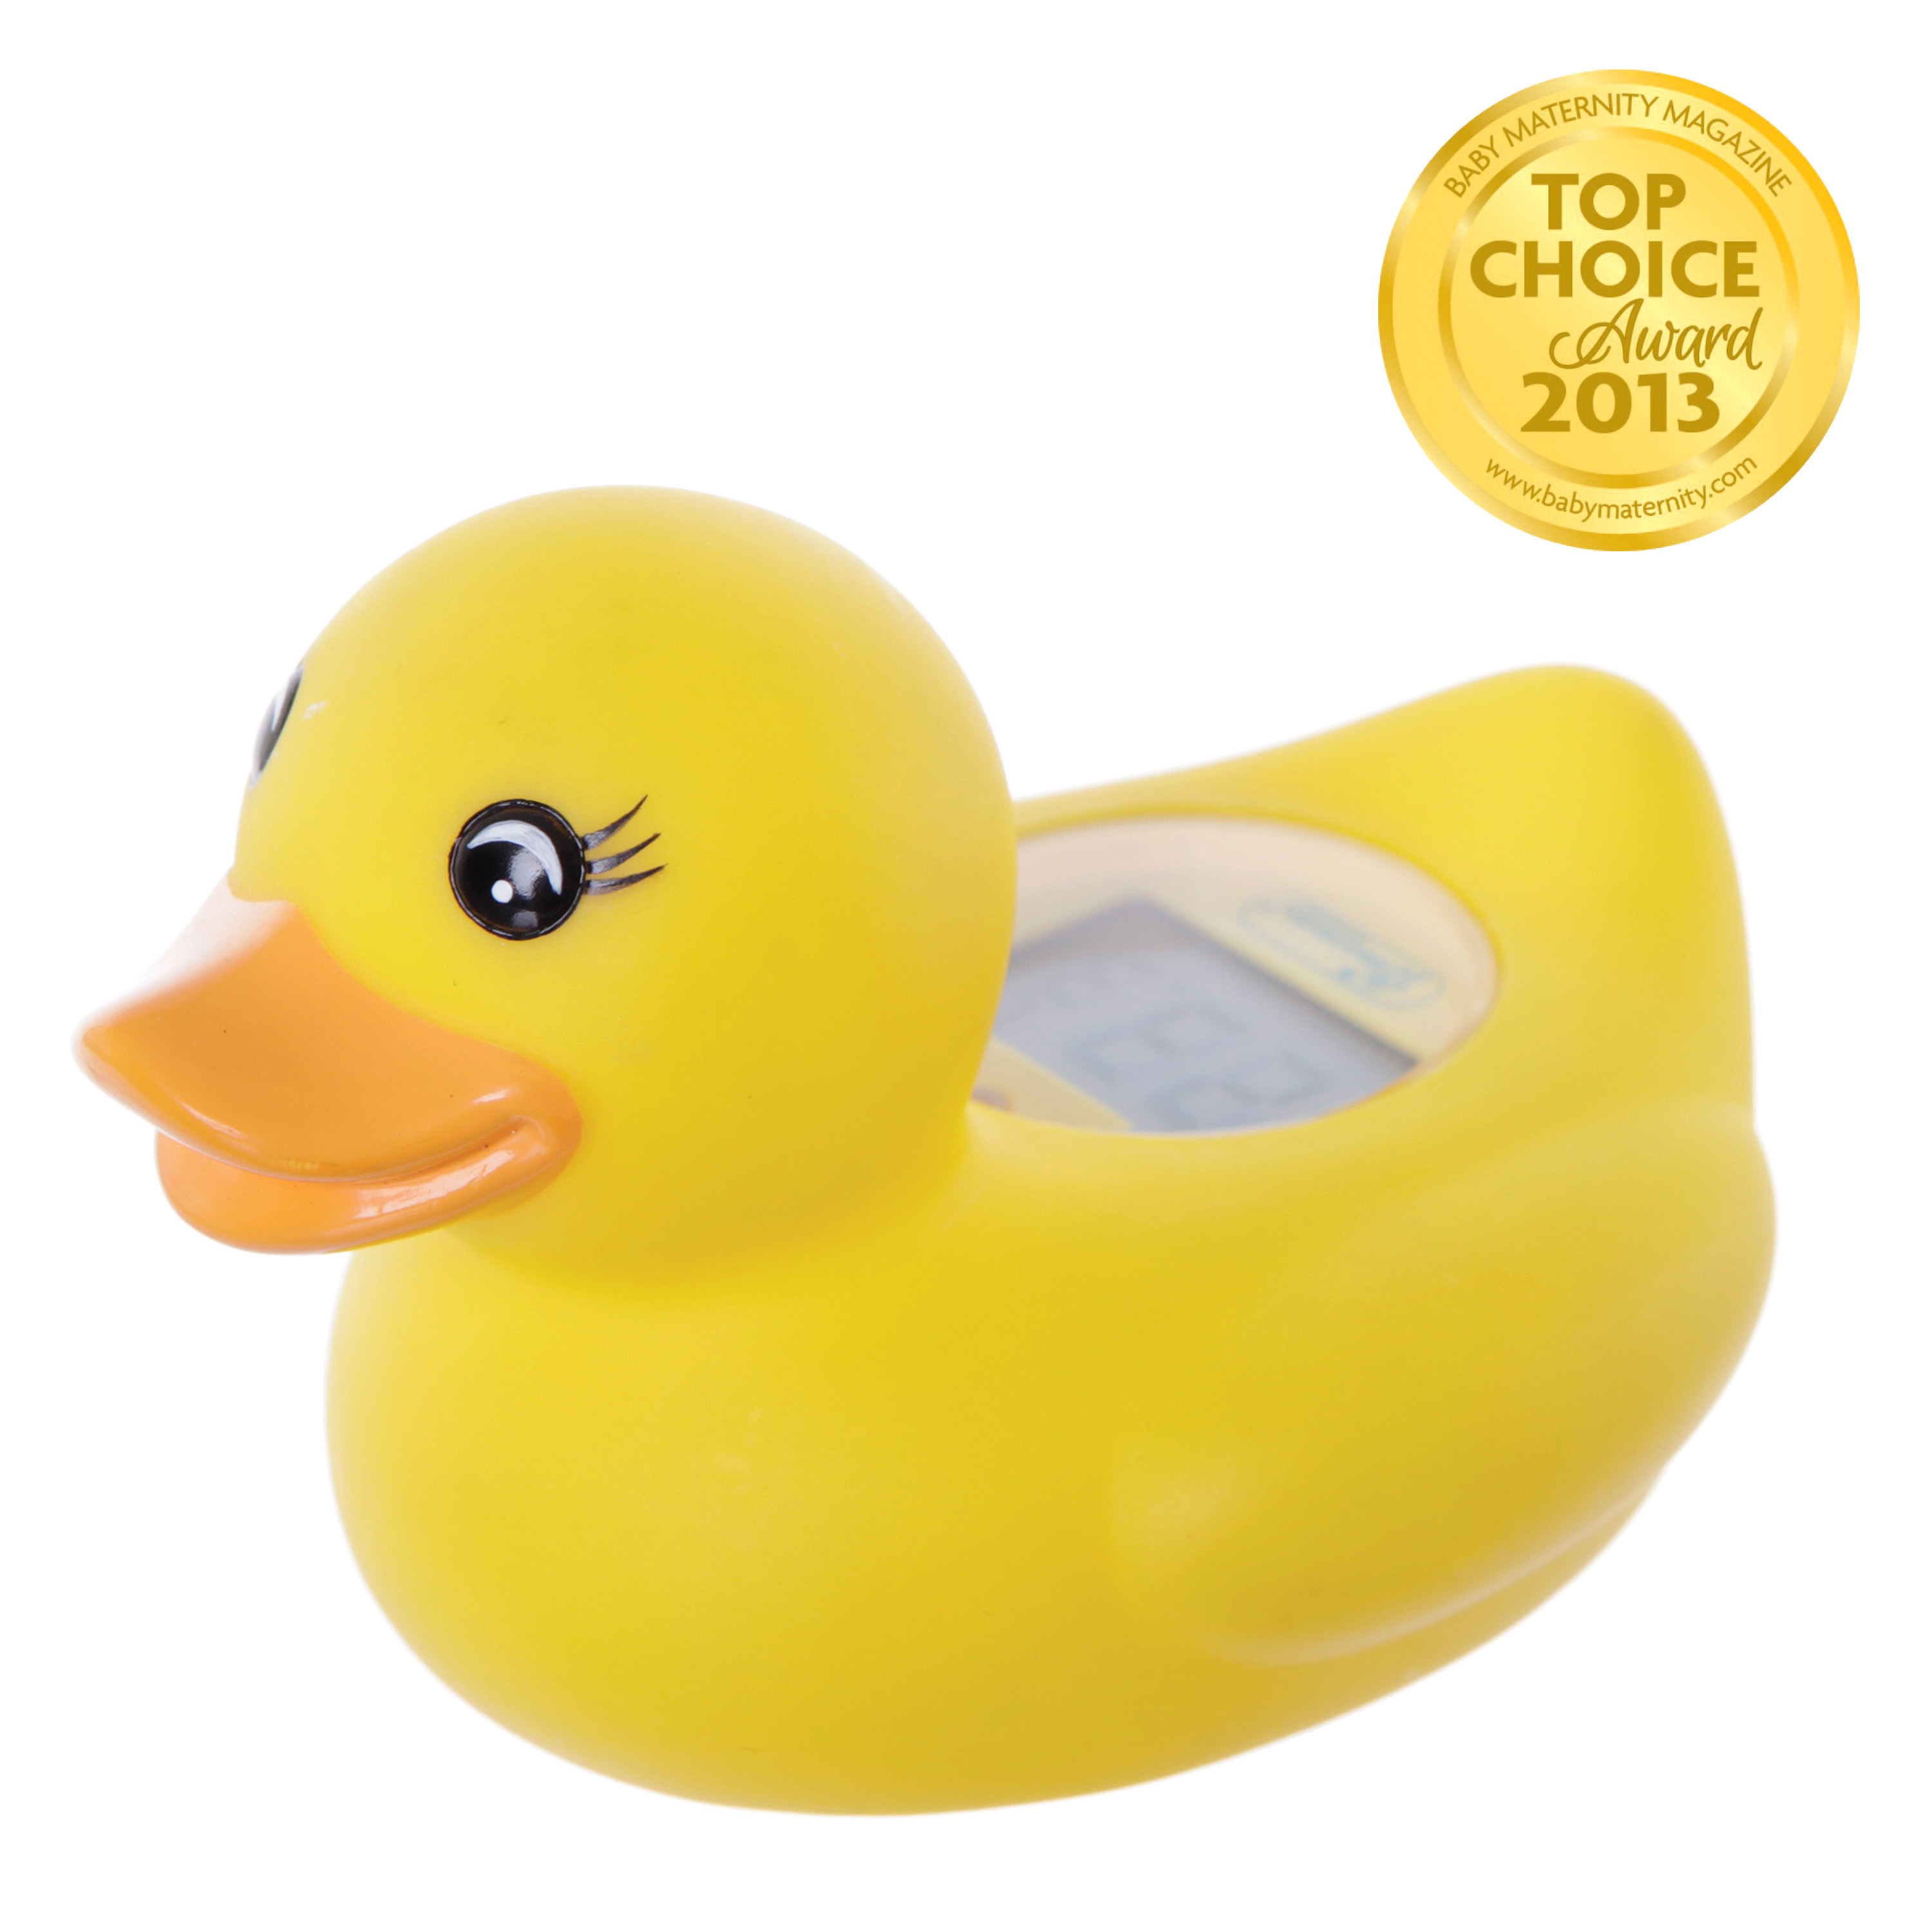 Dreambaby Room & Bath Thermometer, Duck